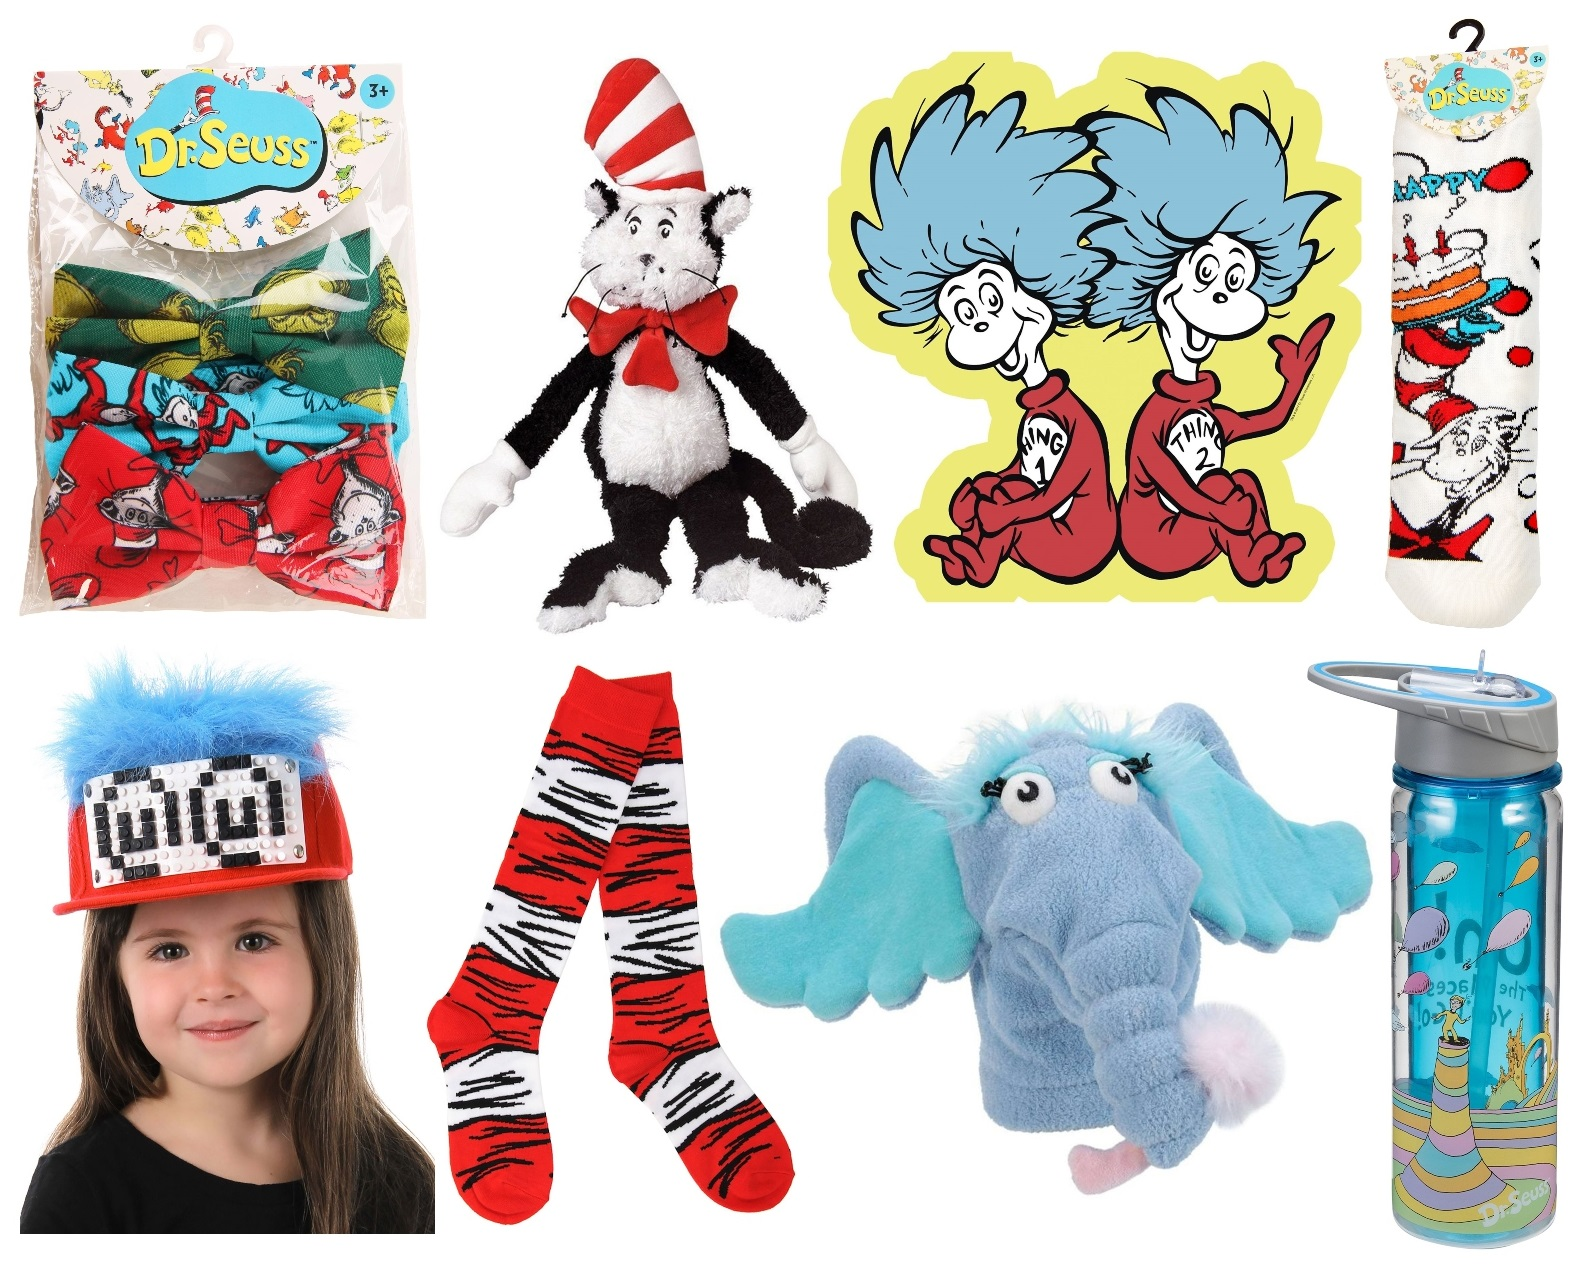 Dr. Seuss Gifts for Children